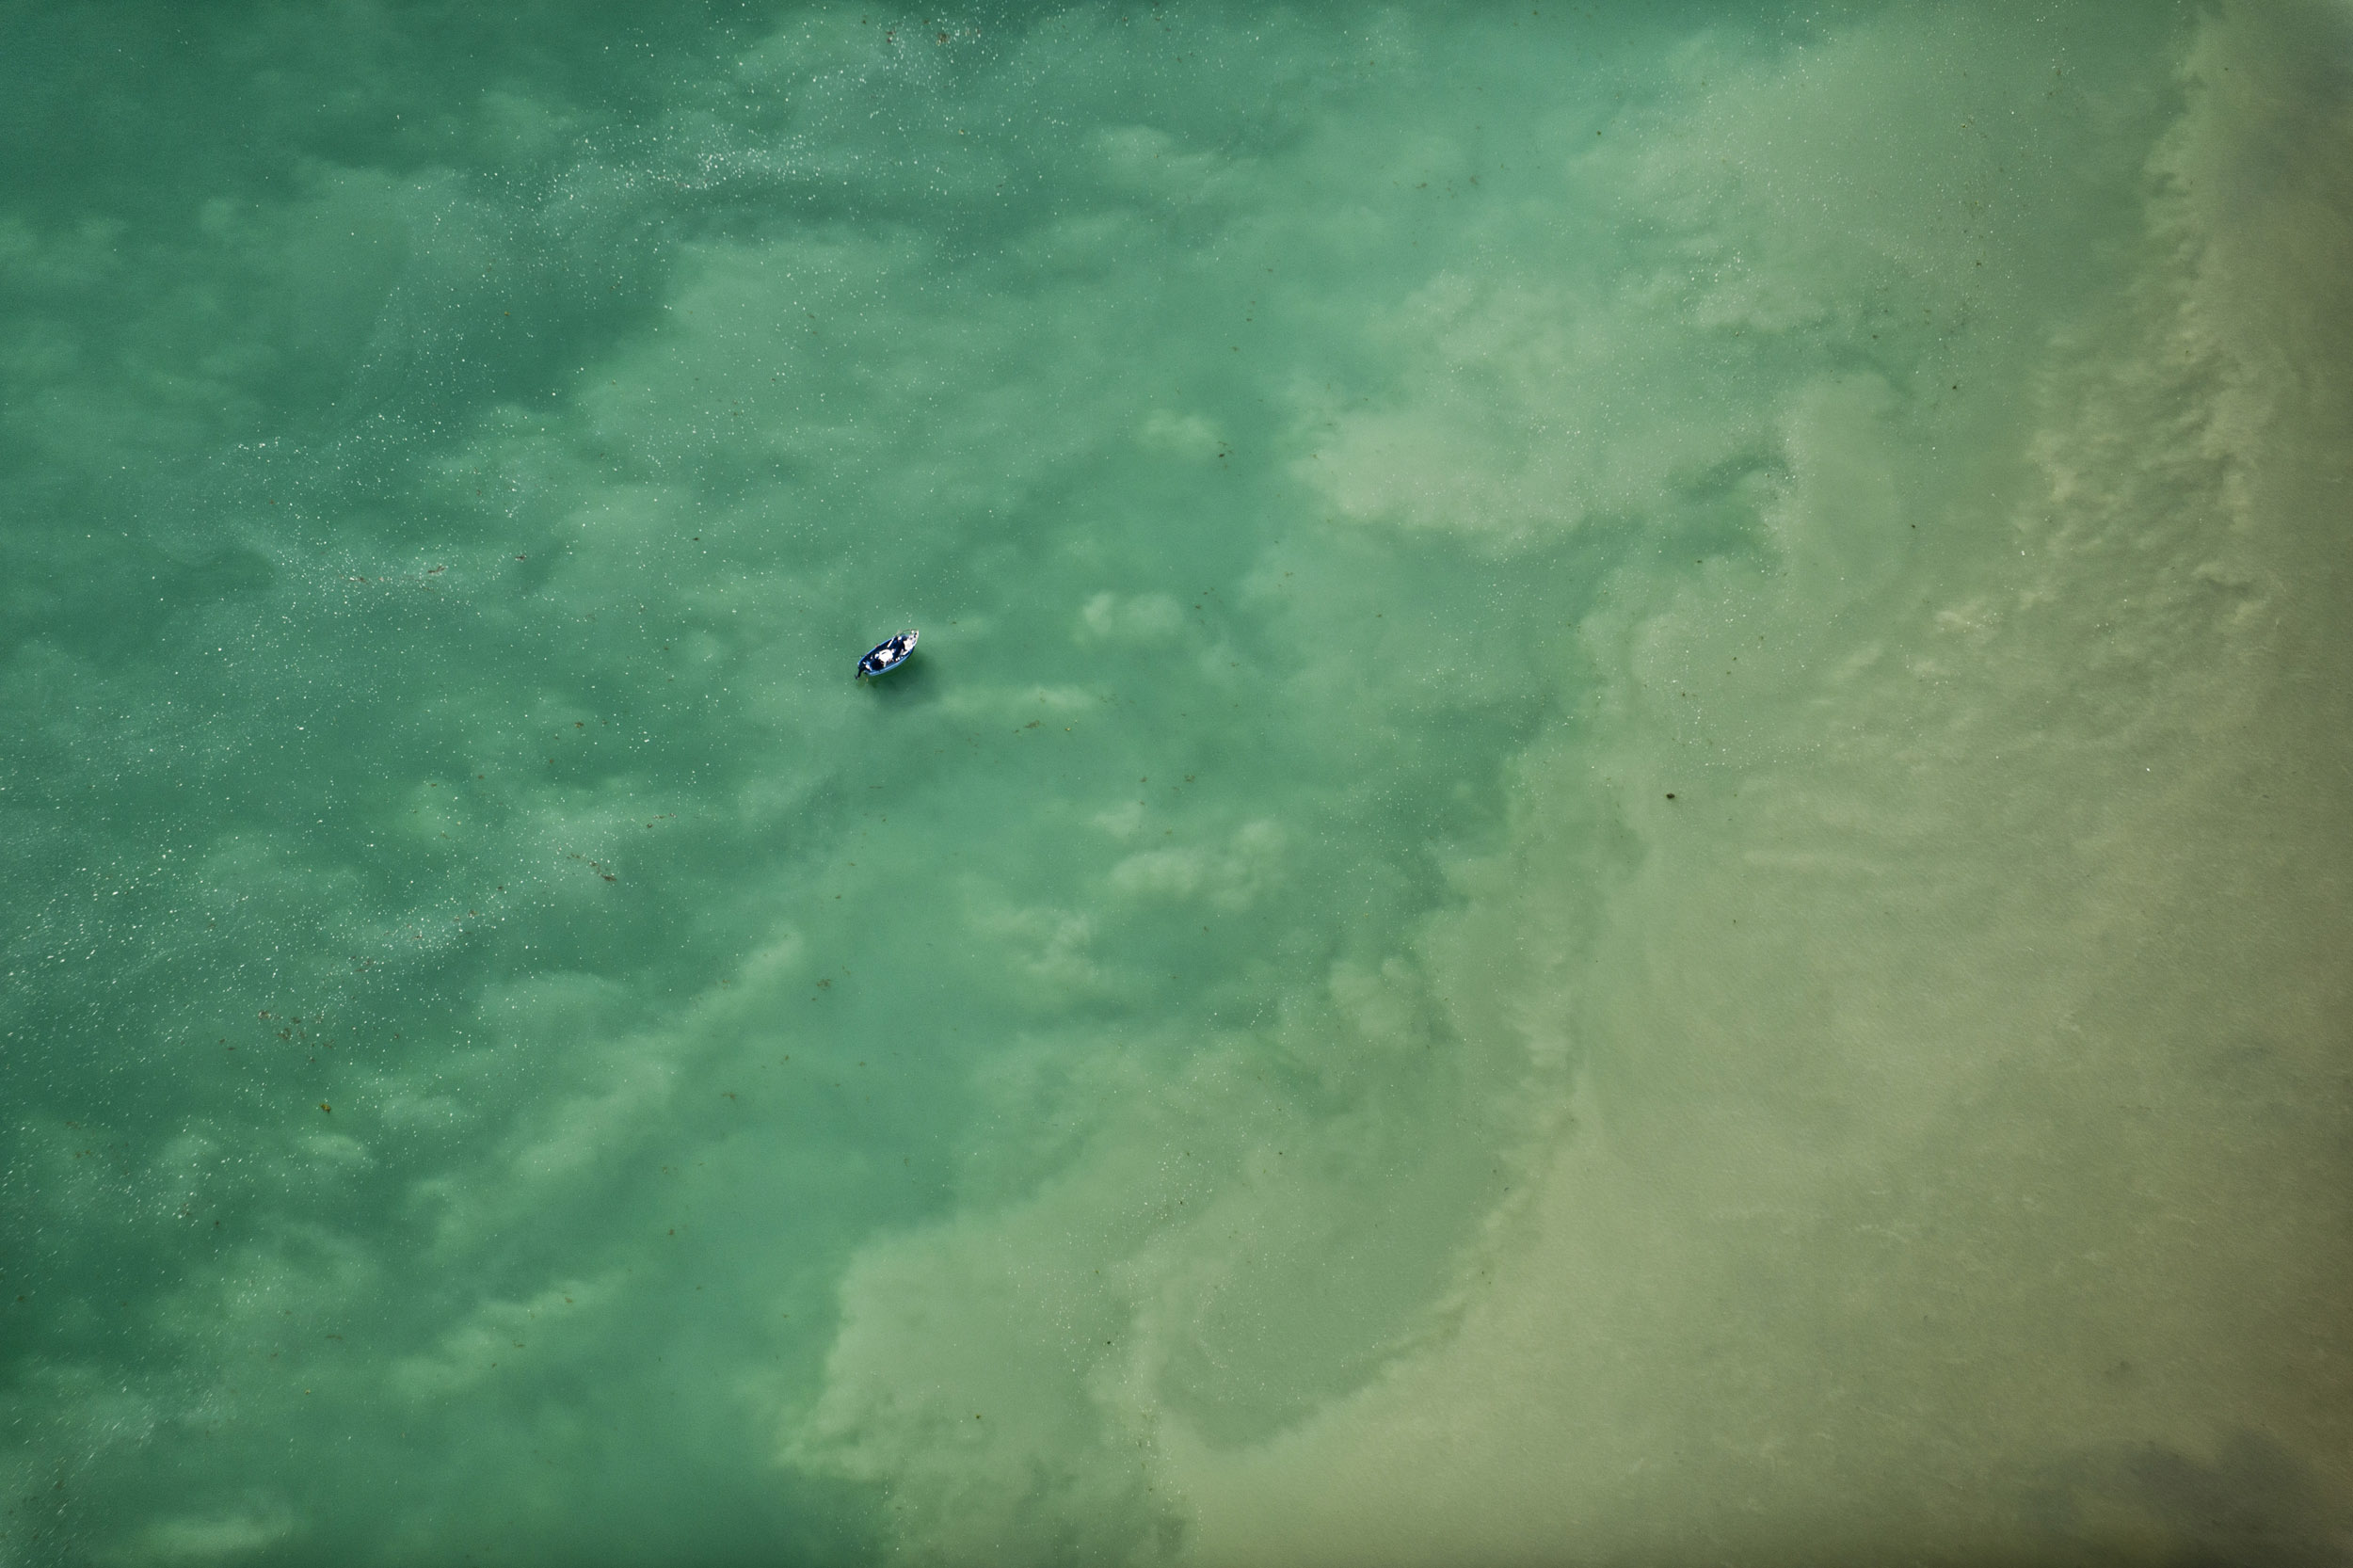 Bottom of the sea - Volaverunt - Hector Garrido, Aerial and human photography